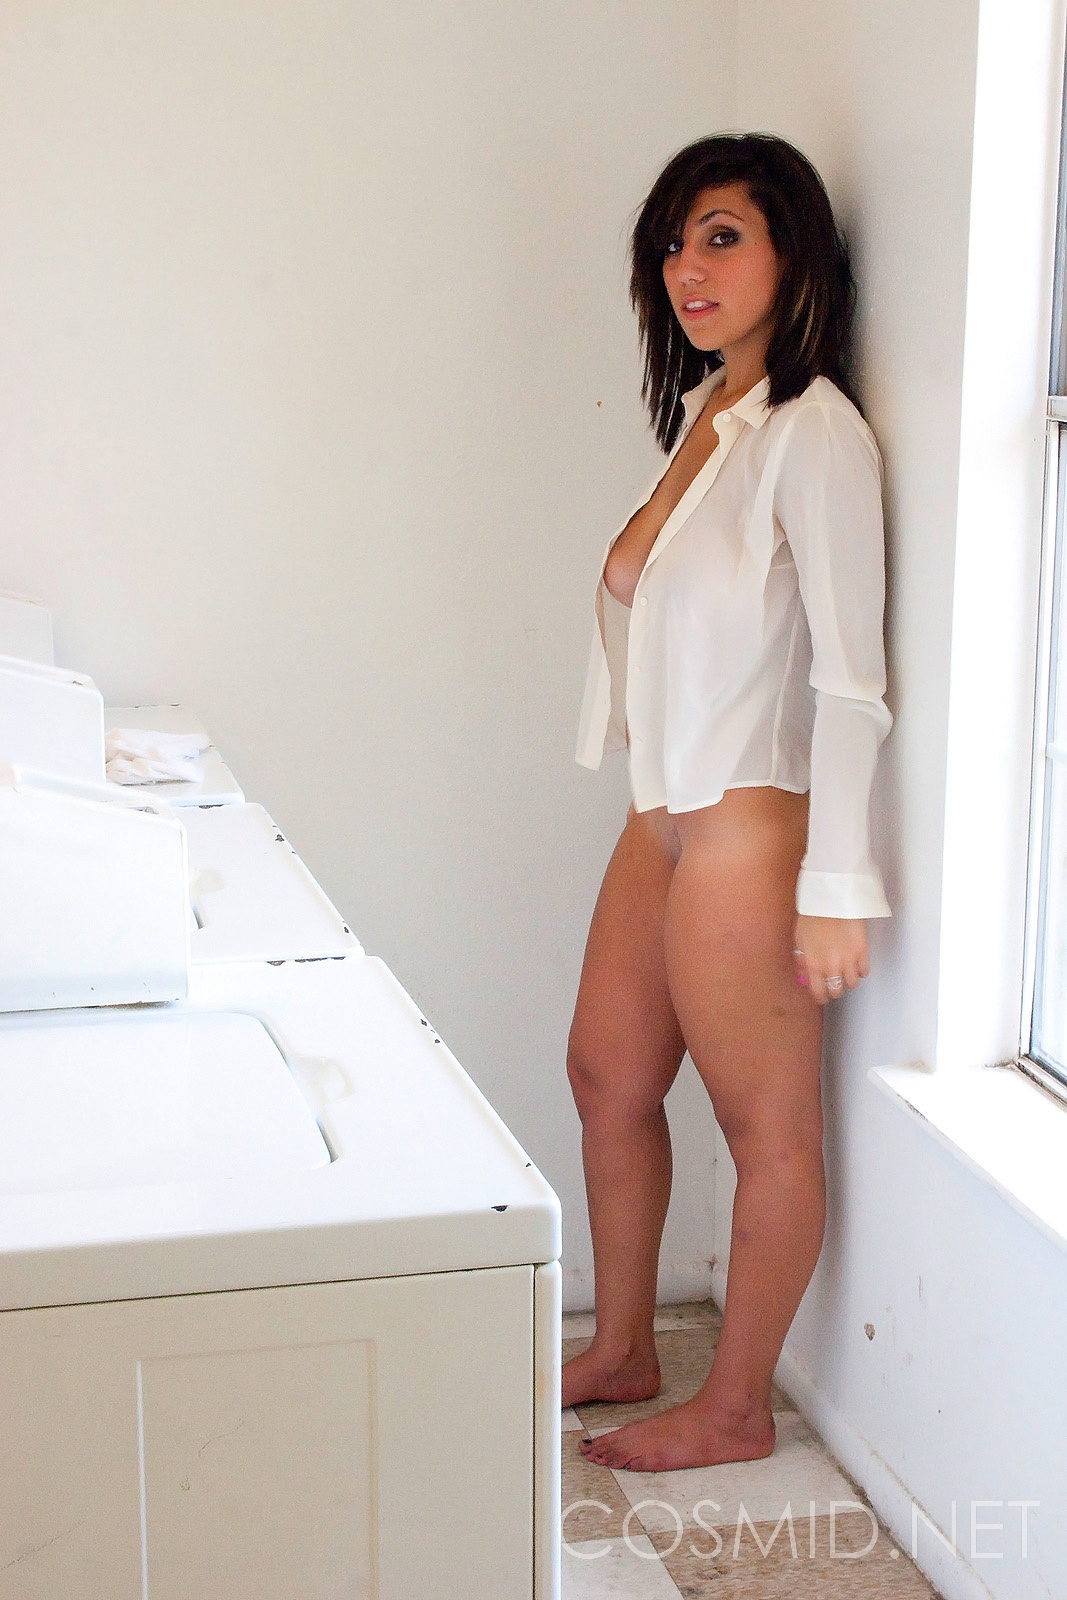 Hot sexy naked doing laundry right! good